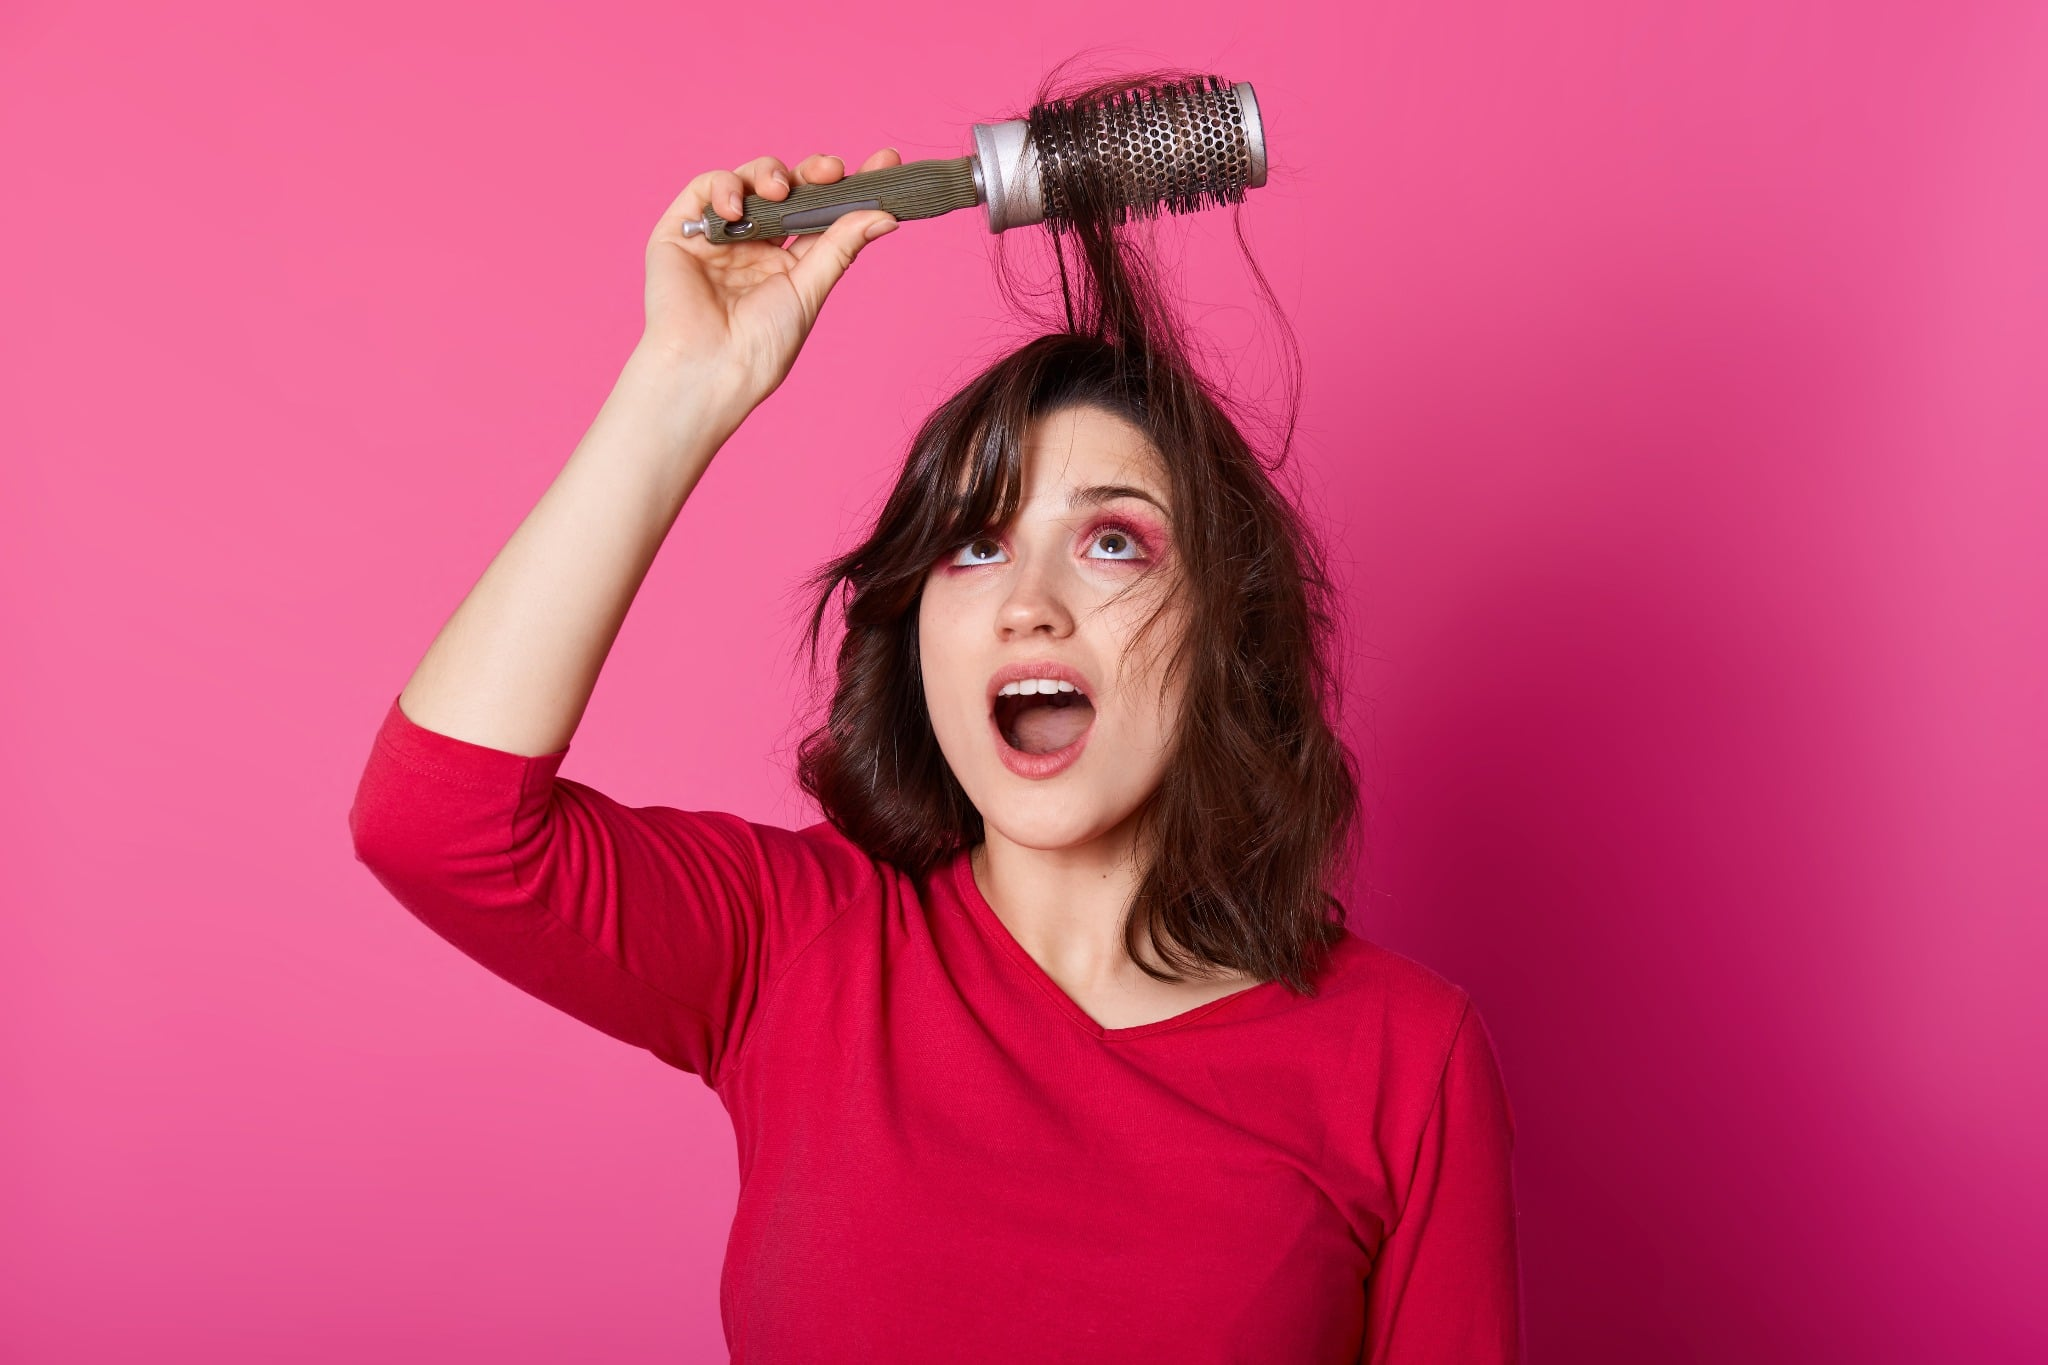 A woman on a pink background with her hair stuck in a round brush.